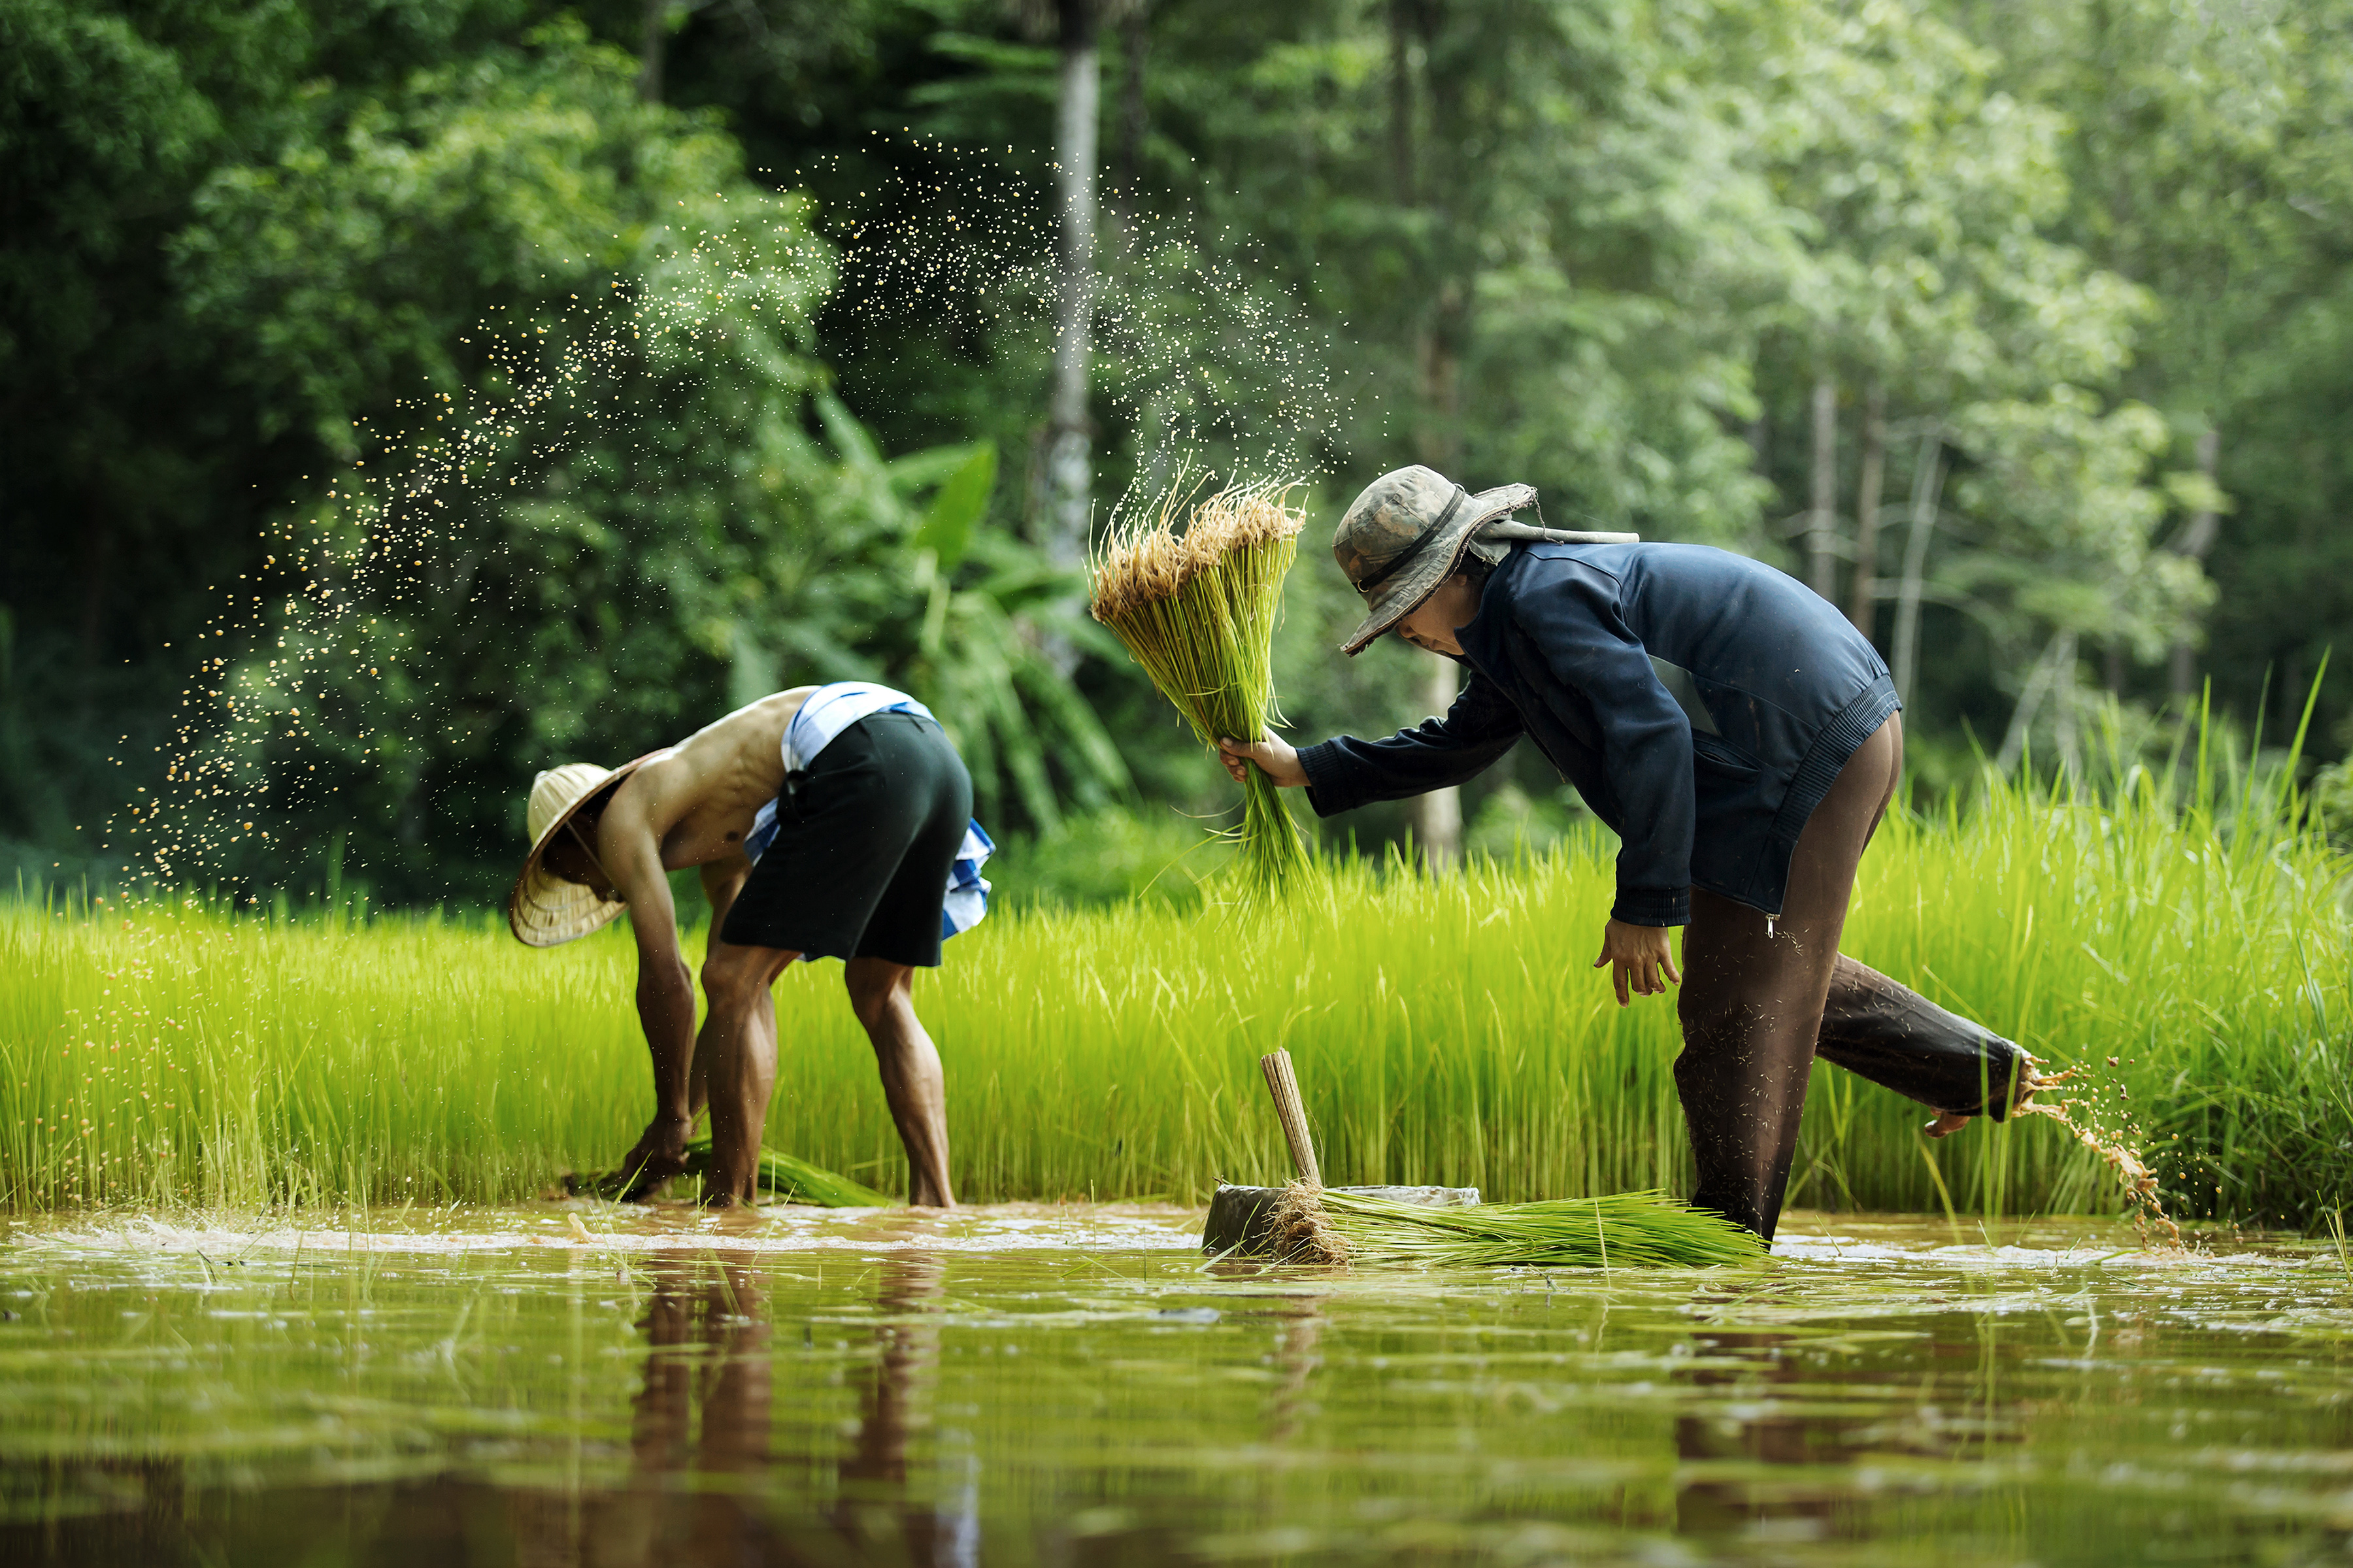 Farmer 4999 who inserted rice in the field 56182